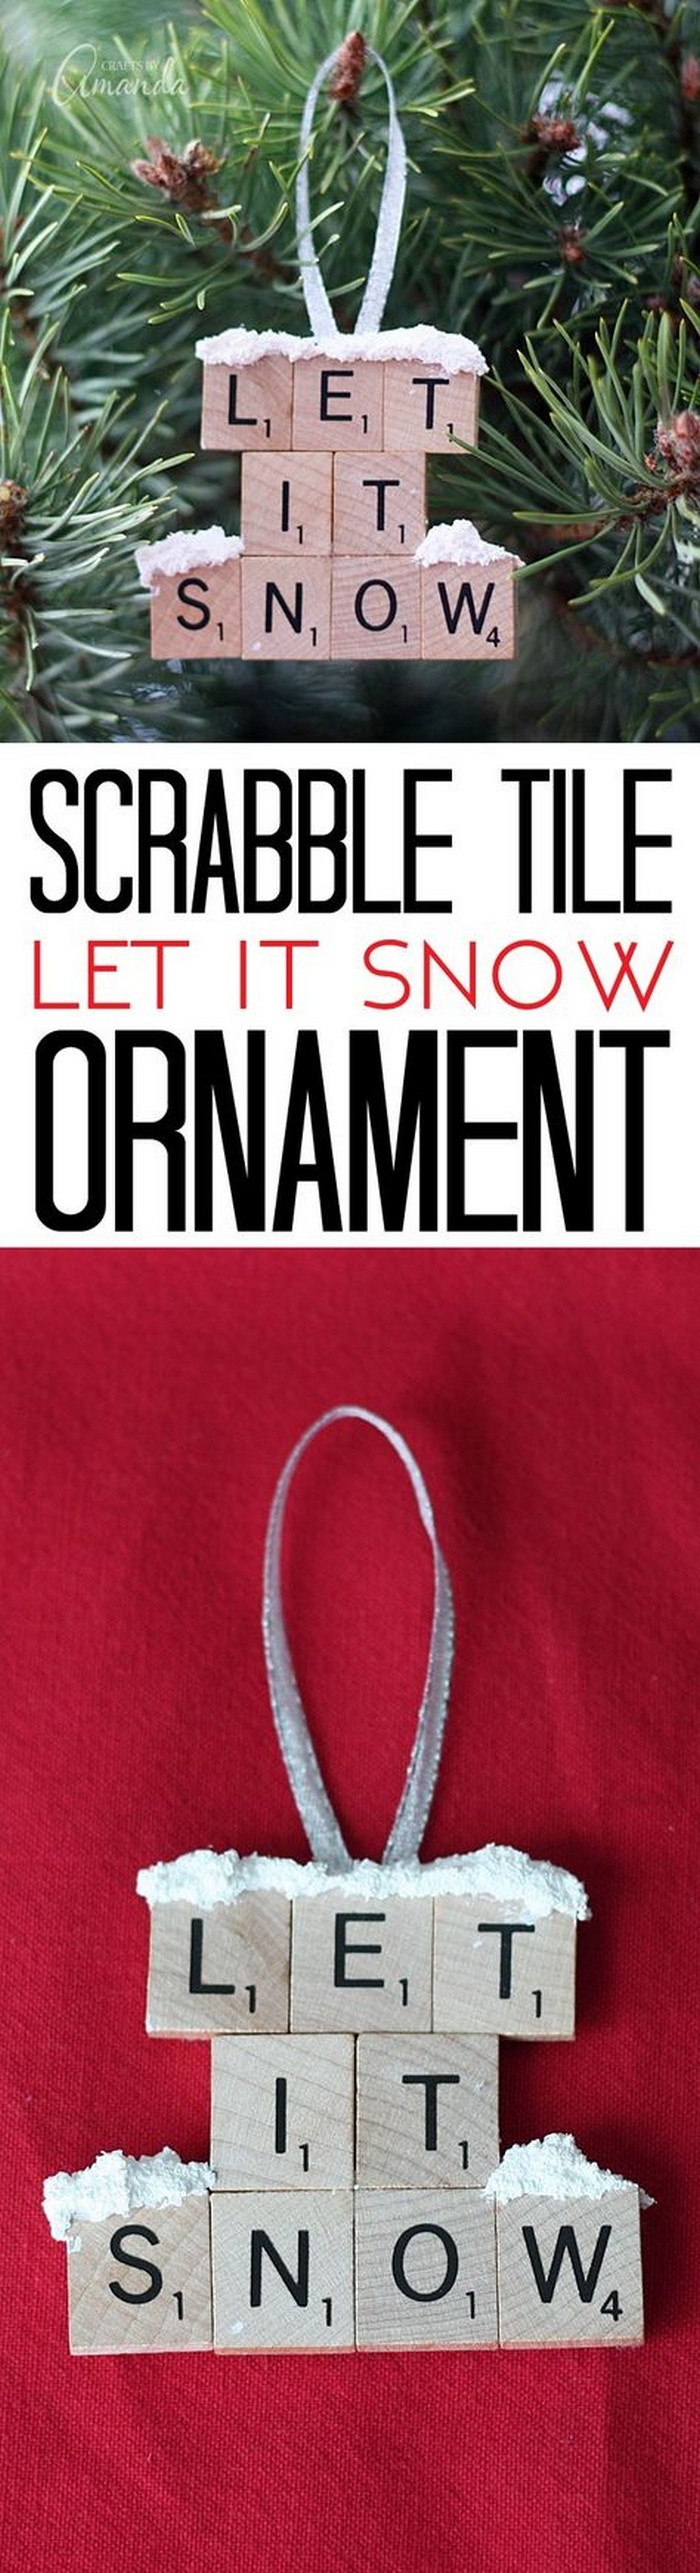 Let it Snow – Scrabble Tile Ornament 25 Interesting Ideas to Make Easy Christmas Crafts